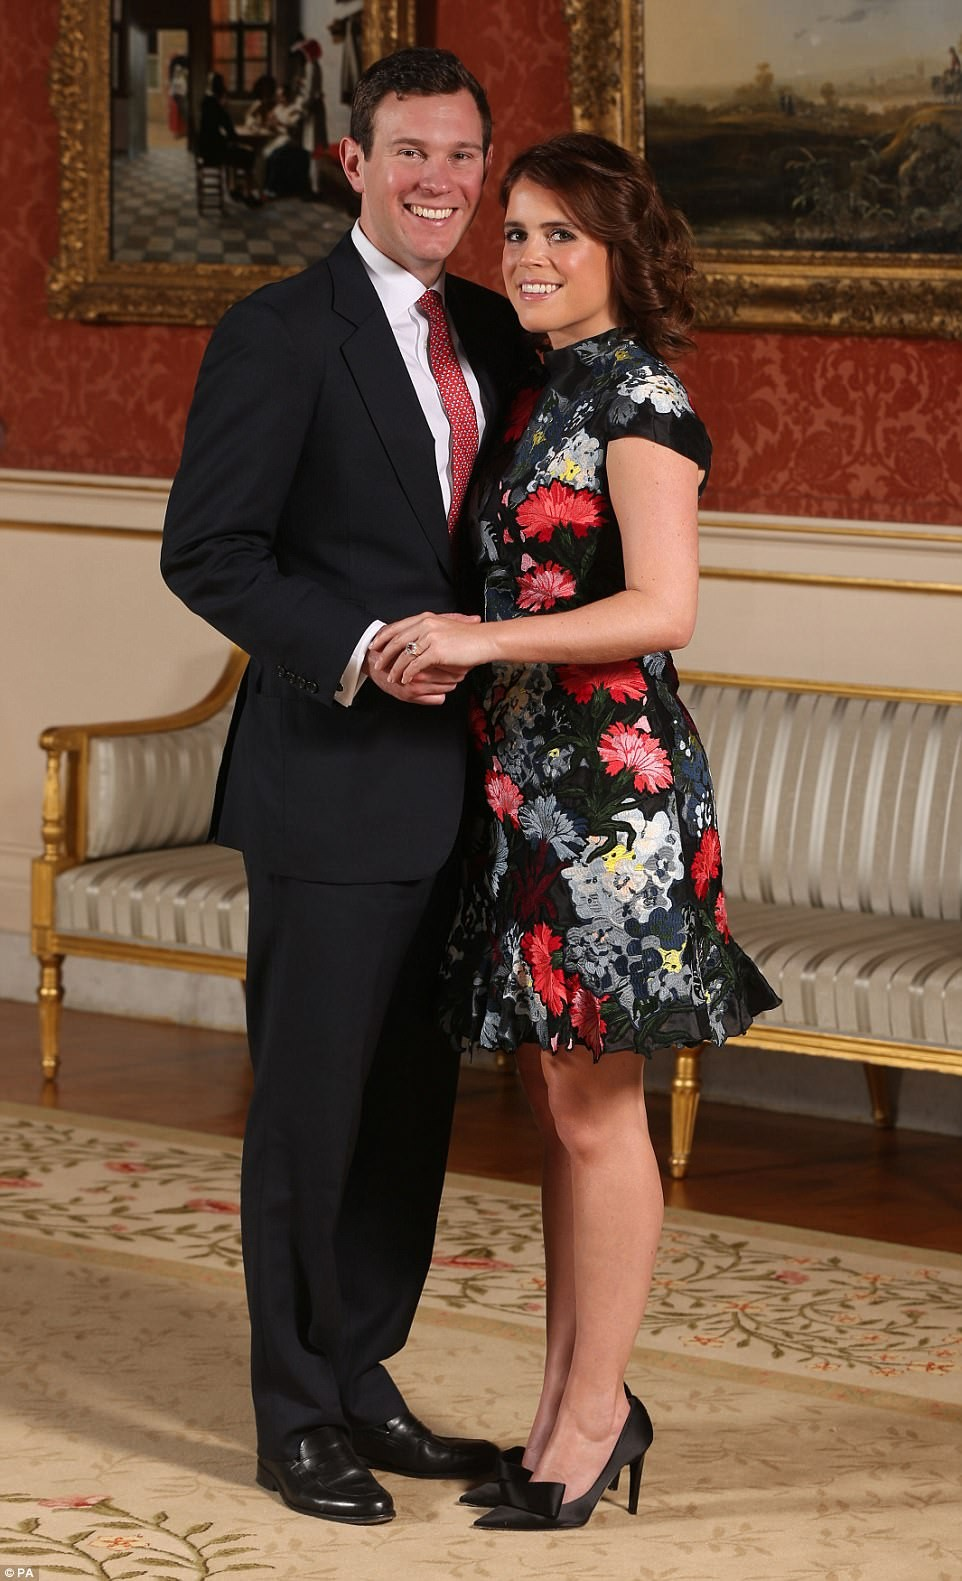 Princess Eugenie shows off her sapphire ring as she poses with Jack Brooksbank after engagement announcement (photos)